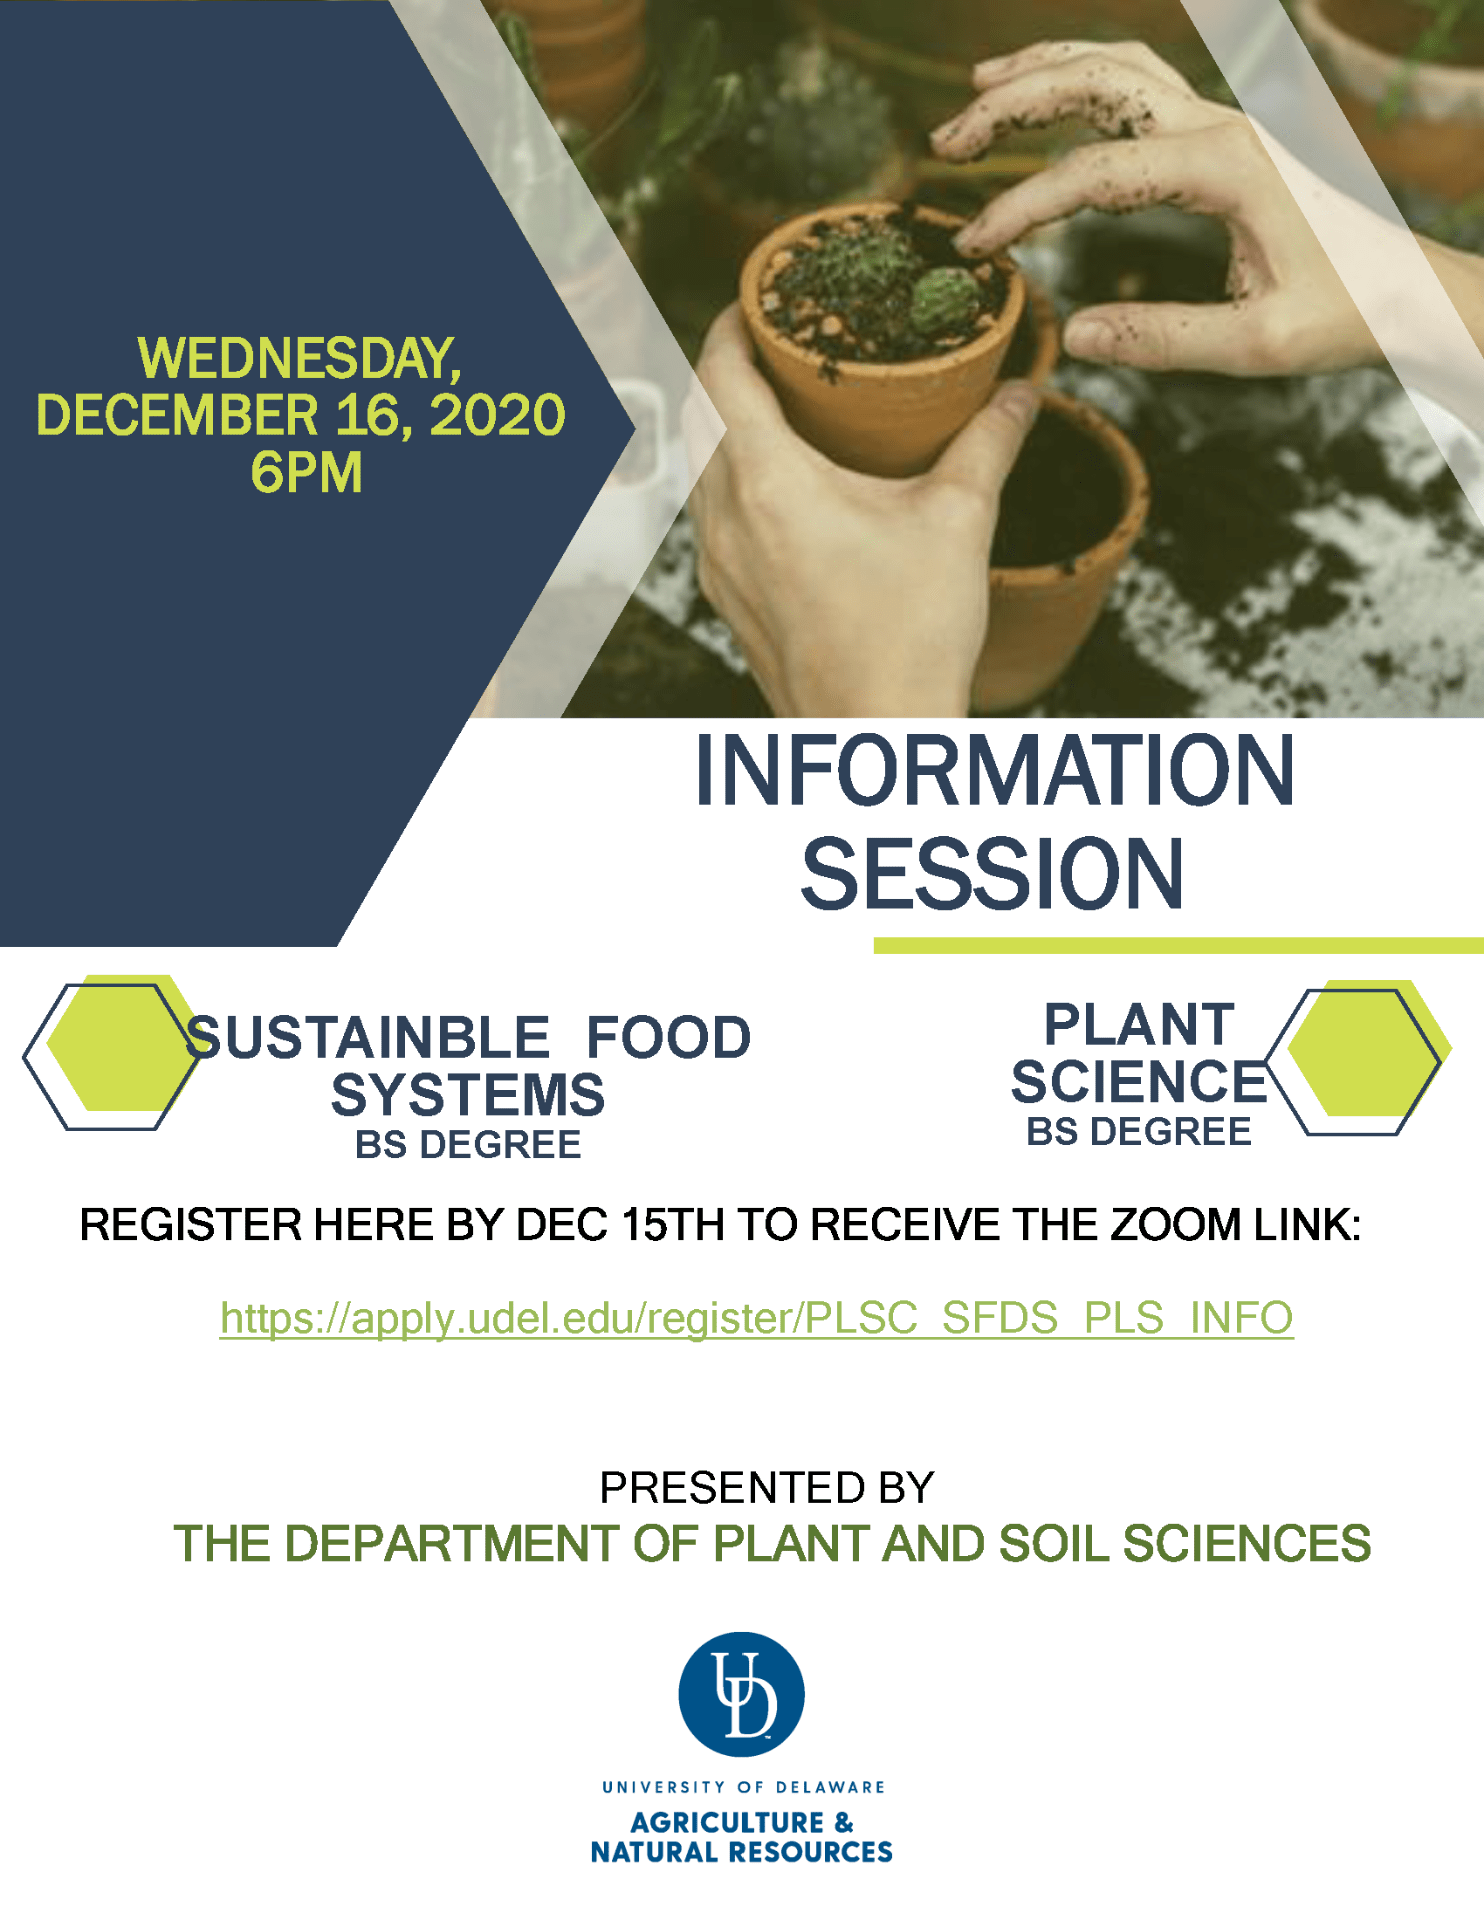 Information session, Wednesday, December 16, 2020, 6 PM, Sustainable Food Systems BS Degree, Plant Science BS Degree, Register here by Dec 15th to receive the zoom link: https://apply.udel.edu/register/PLSC_SFDS_PLS_INFO. Presented by the Department of Plant and Soil Sciences, University of Delaware, Agriculture & Natural Resources